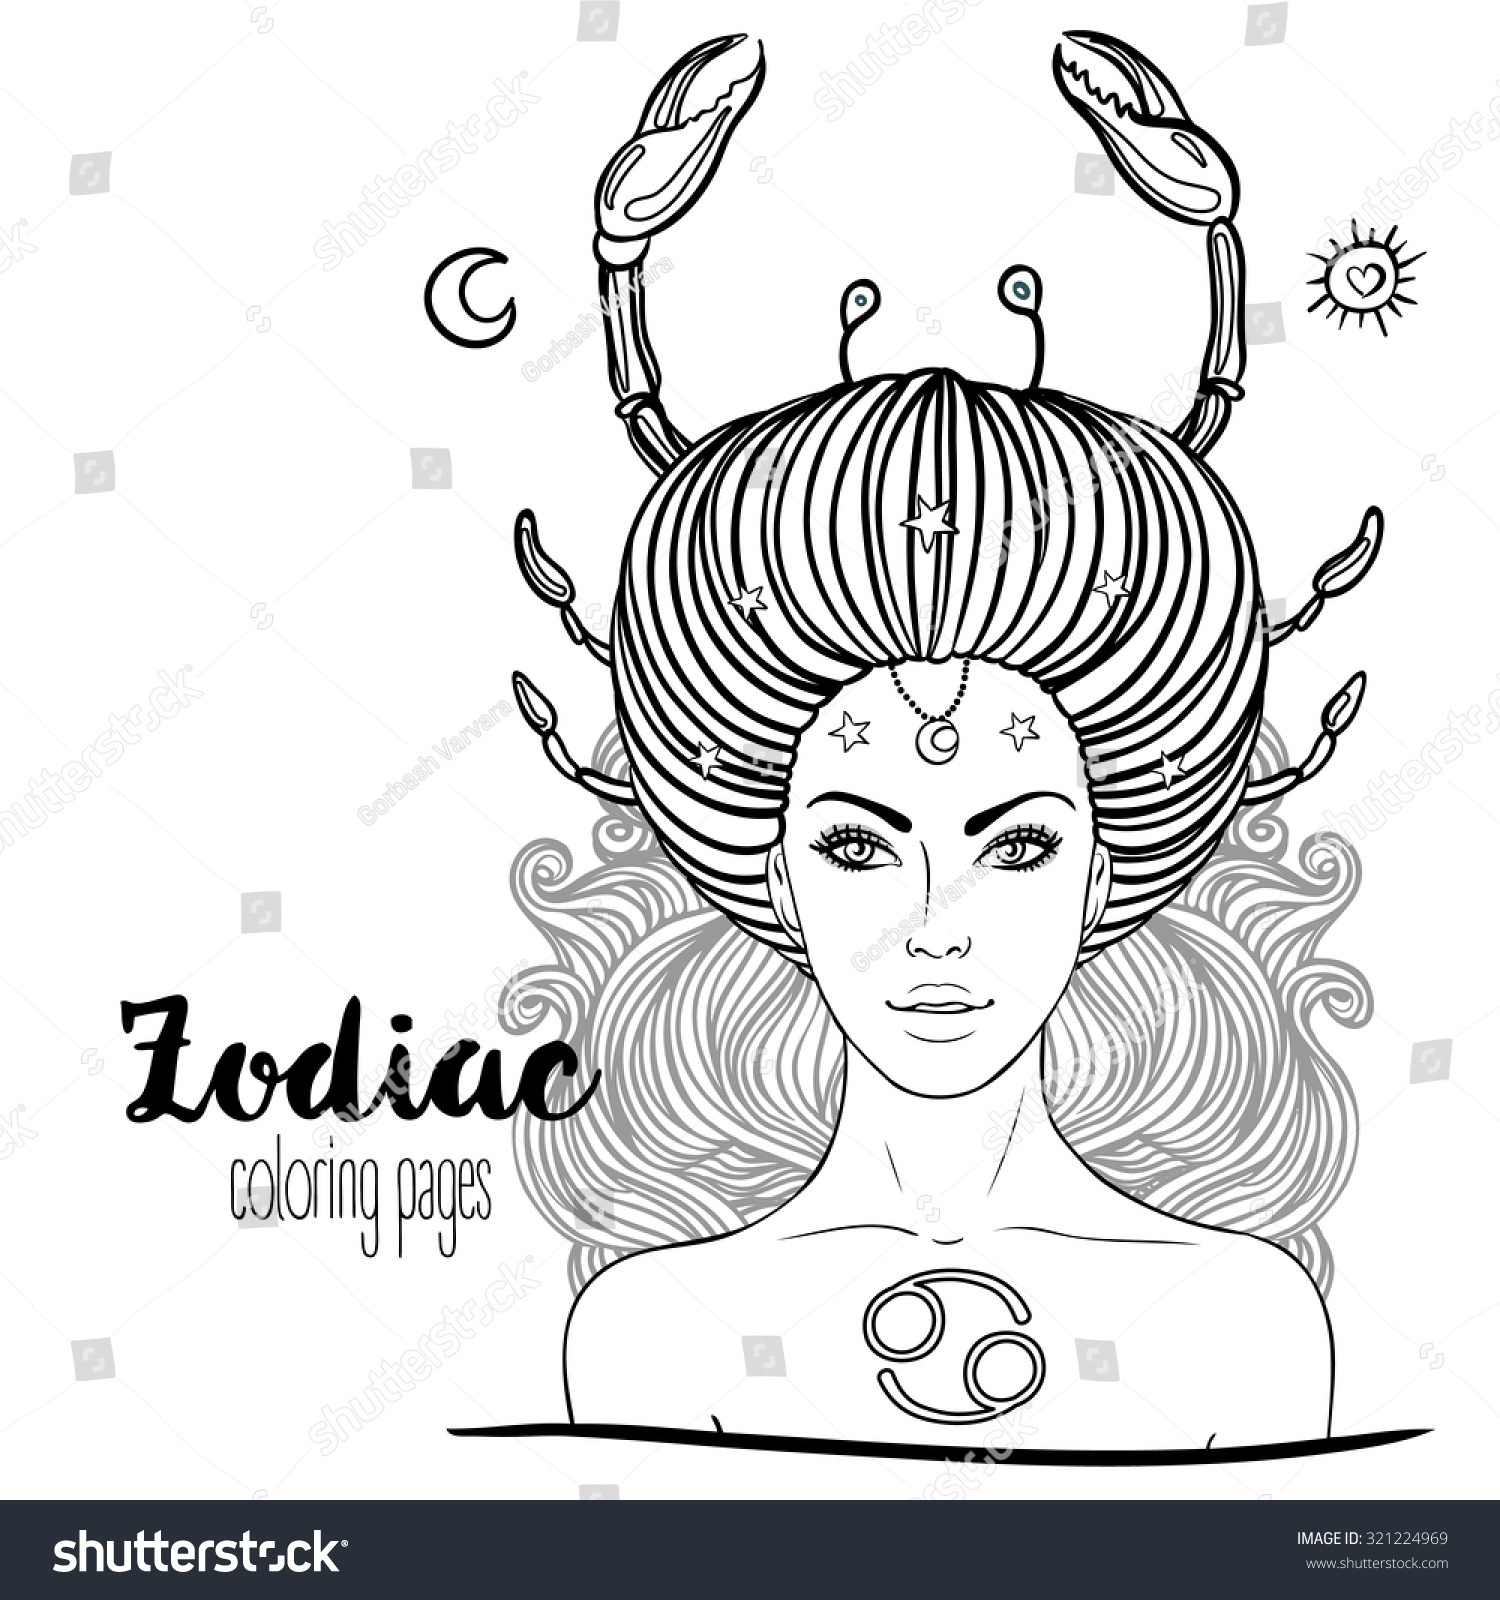 africain zodiac coloring pages - photo#15